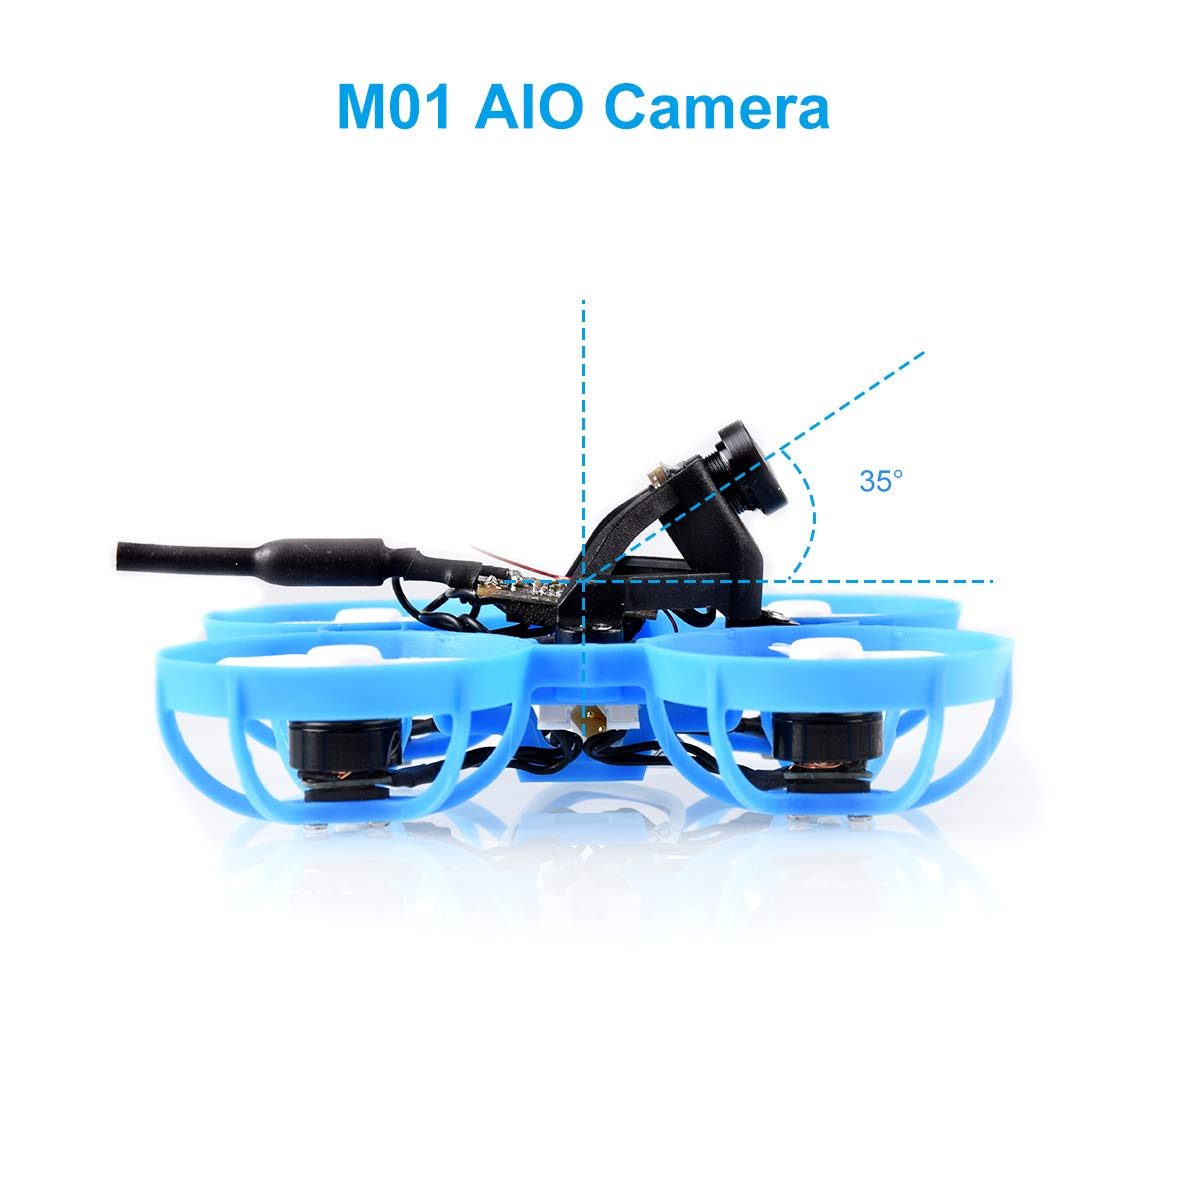 BETAFPV Meteor65 DSMX 1S Brushless Whoop Drone with BT2.0 Connector F4 1S Brushless FC V2.1 22000KV 0802 Motor for Micro Tiny Whoop FPV Racing Whoop Drone Quadcopter